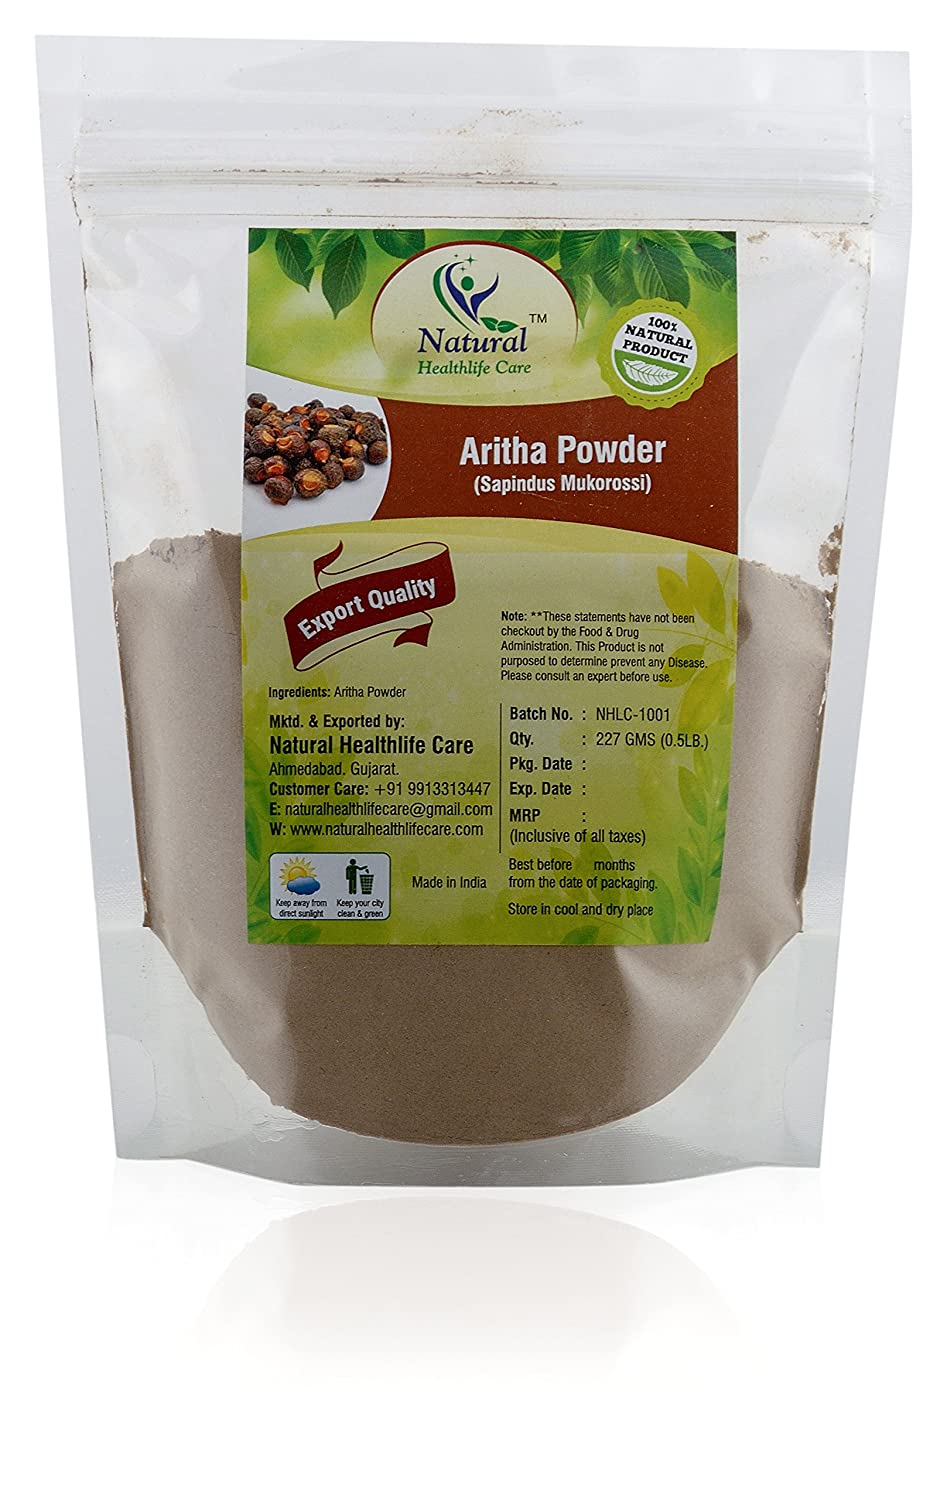 100% Pure Natural Aritha Powder/Soap nut Powder(SAPINDUS MUKOROSSI) FOR SILKY HAIRS (227g / (1/2 lb) / 8 ounces) Natural Healthlife Care